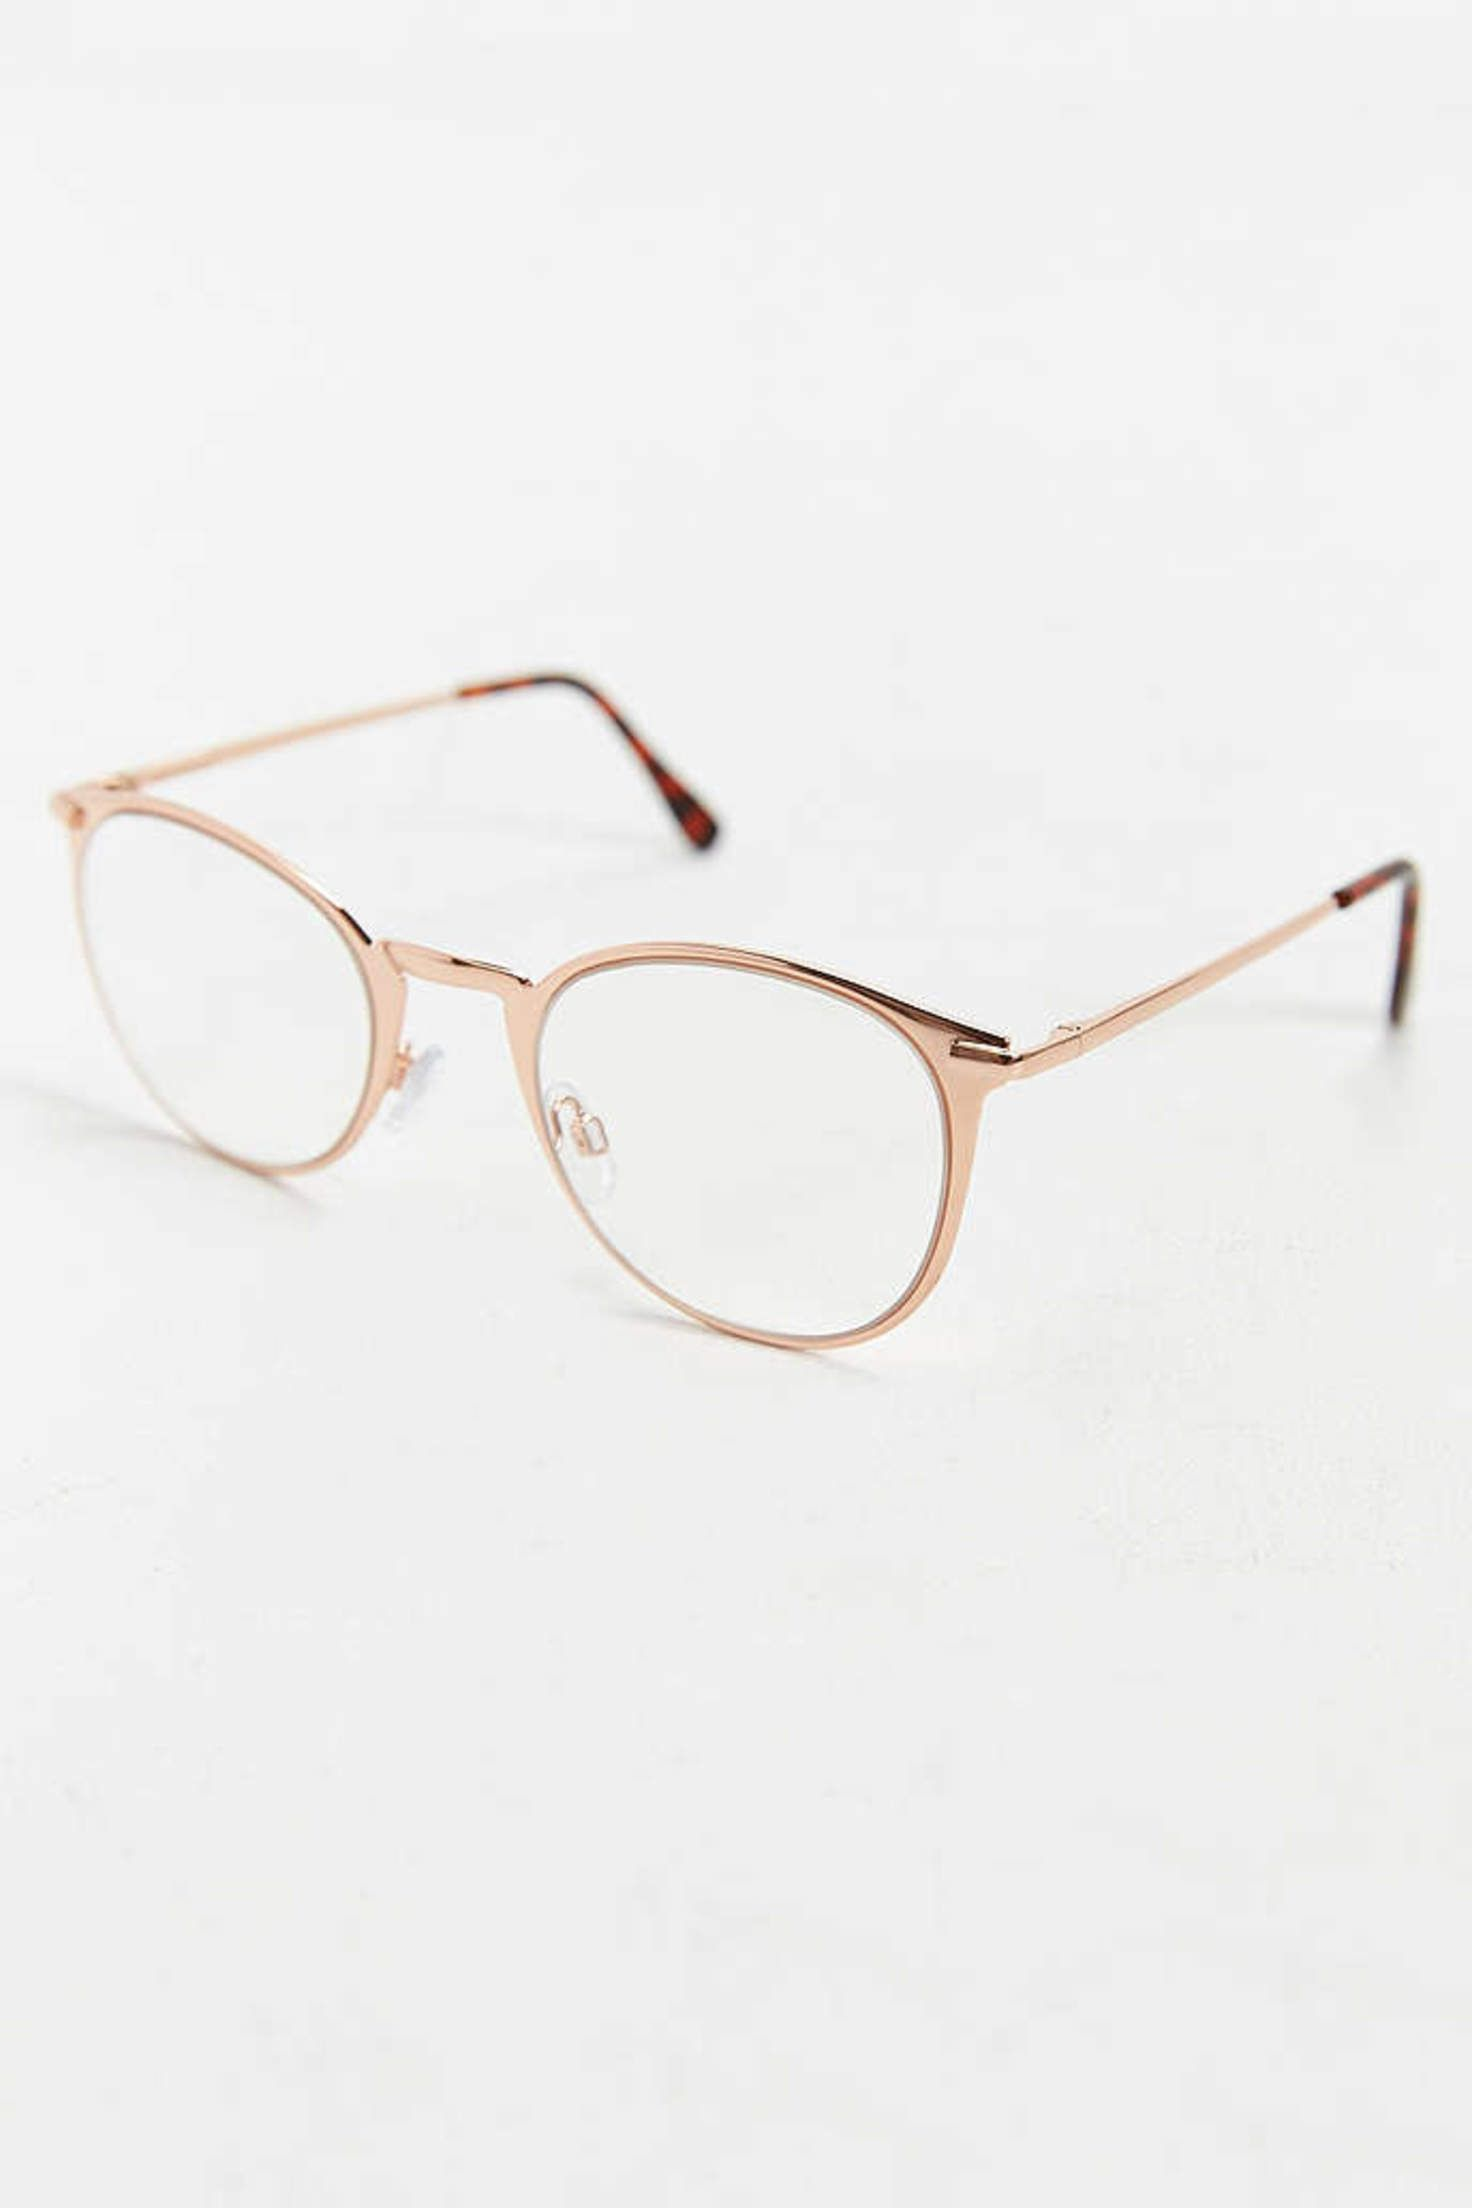 ca388b29ae Rose Gold Round Readers - Urban Outfitters